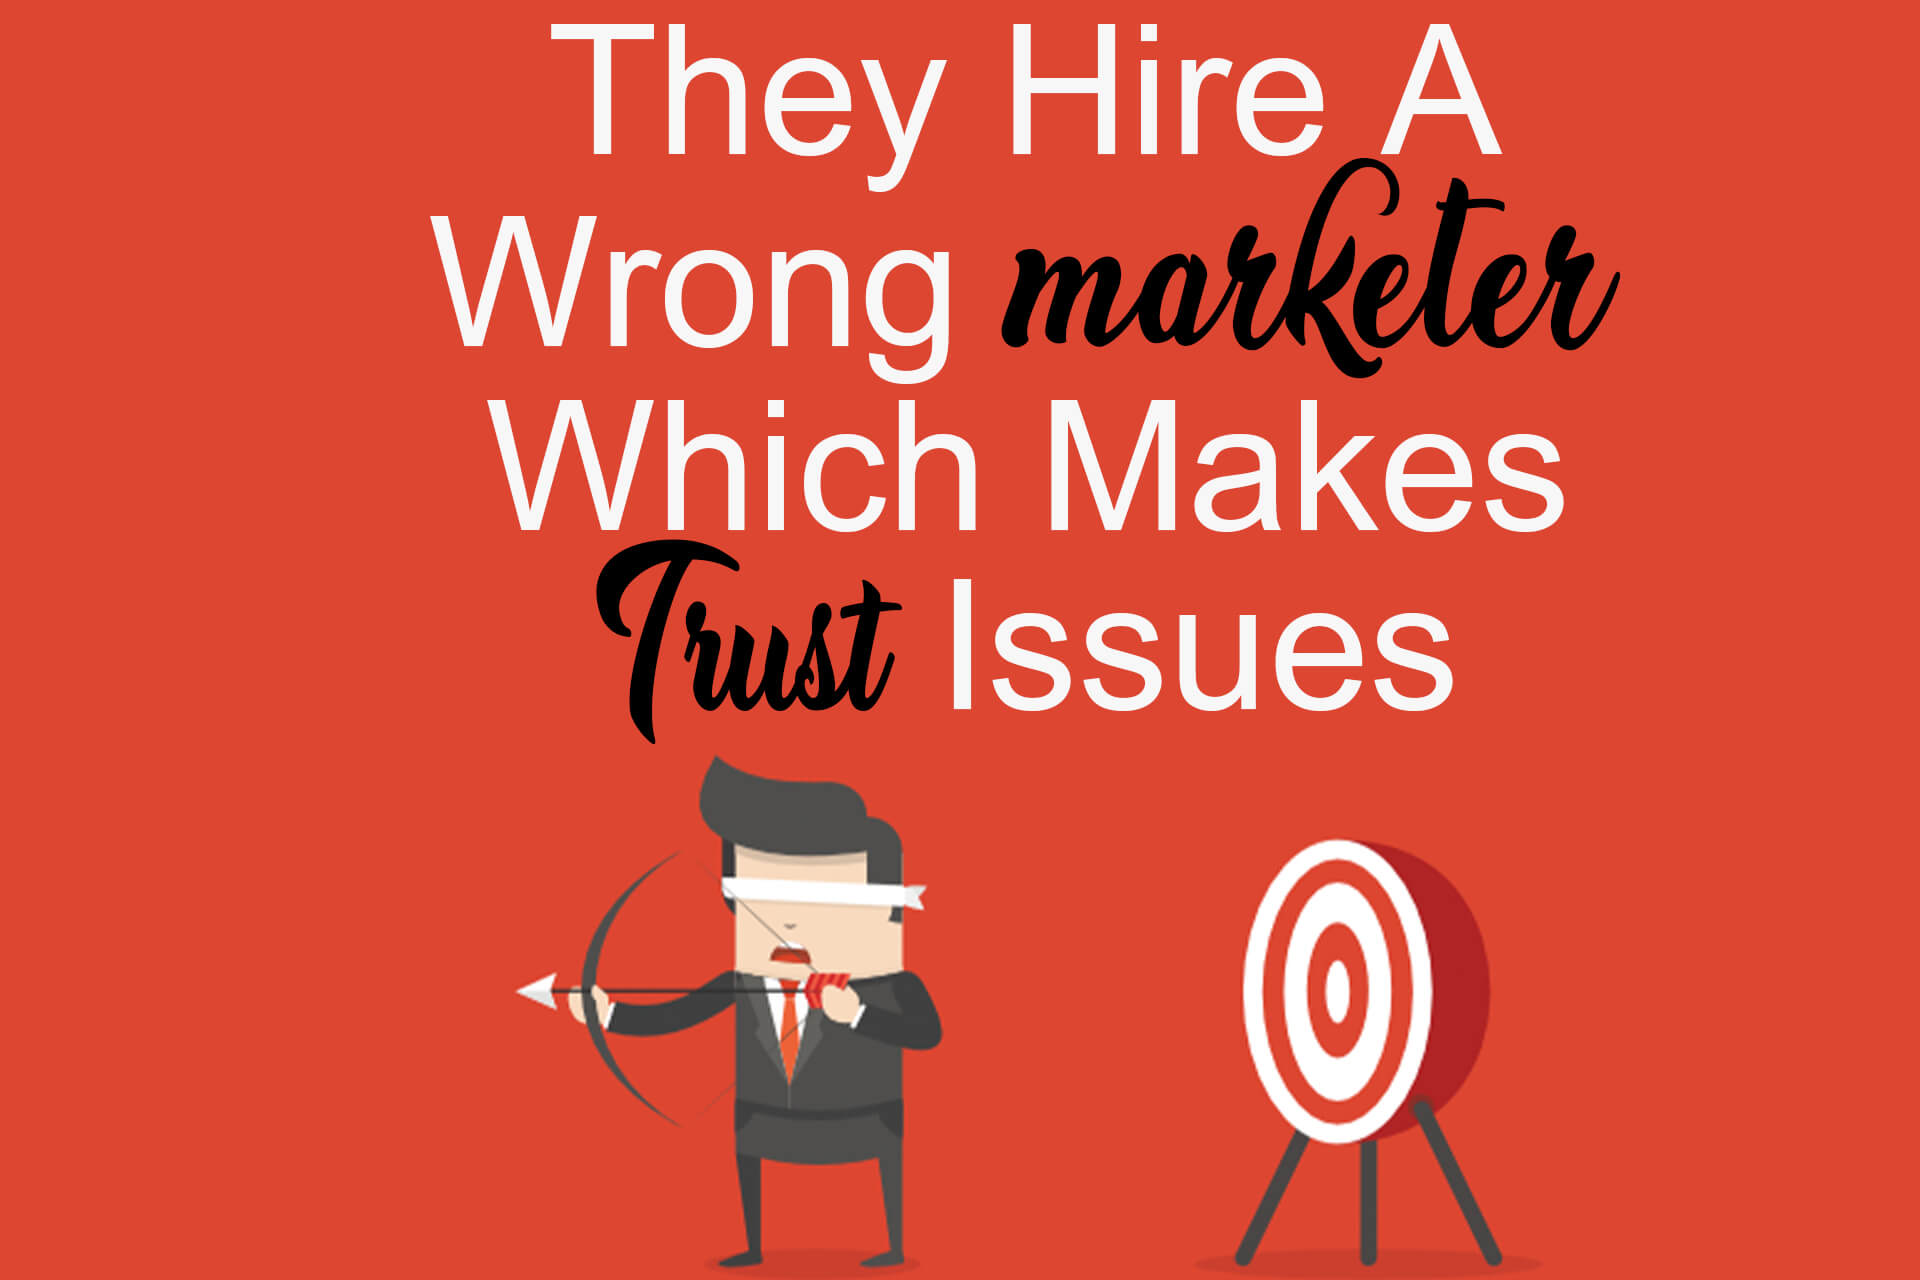 Some Of The Business Mans Hire A Wrong Marketer Which Makes Trust Issues